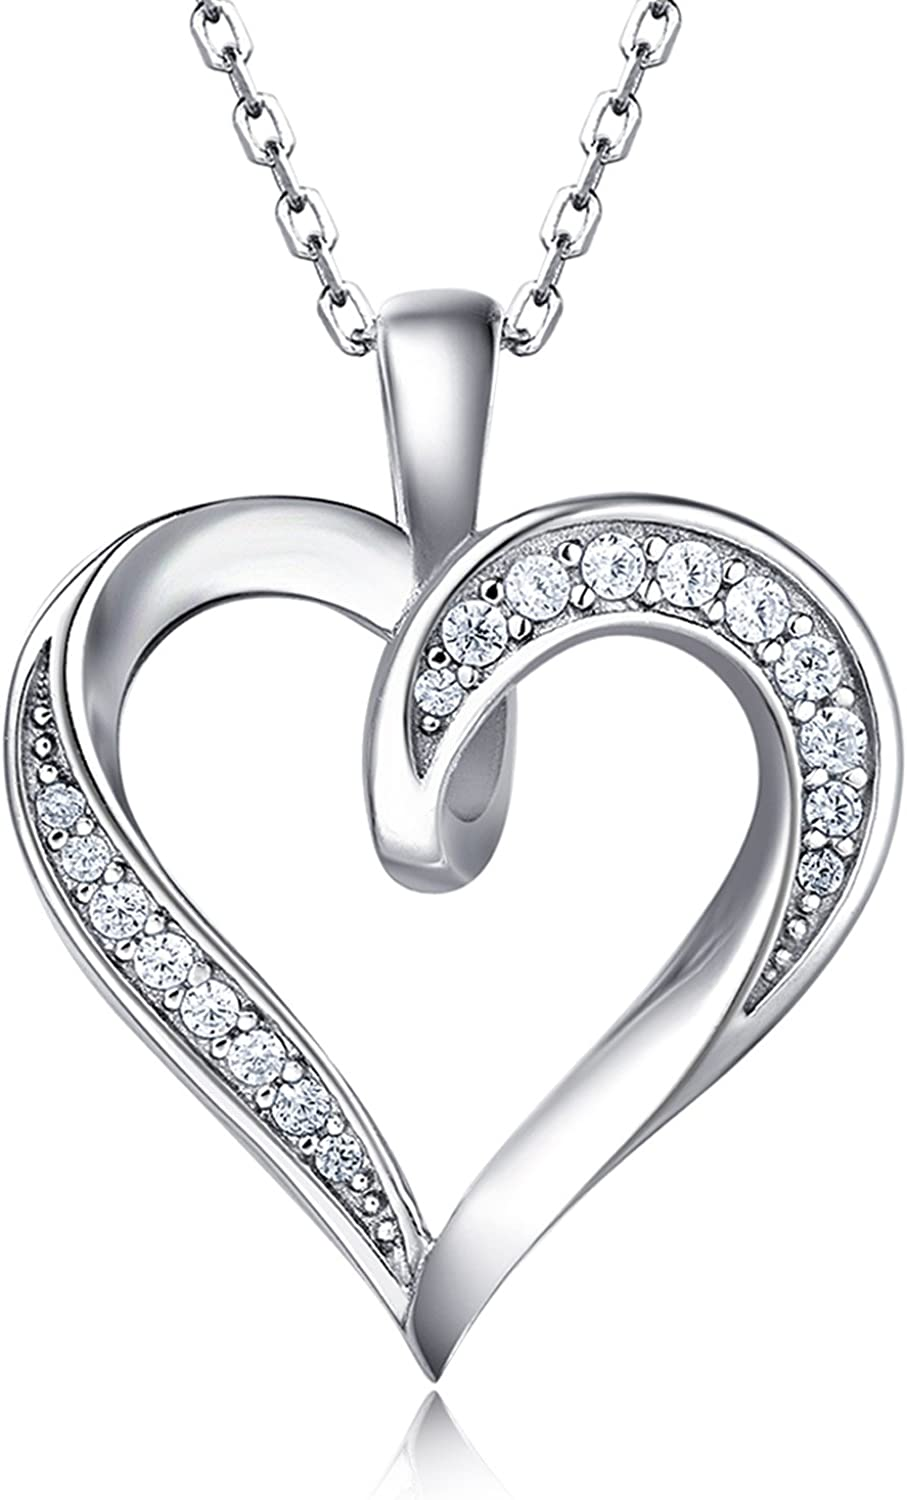 "Billie Bijoux 925 Sterling Silver Infinity Love Heart Necklace Platinum Plated Round CZ Diamond Fine Woman's jewelry 18"" Mother's Day"